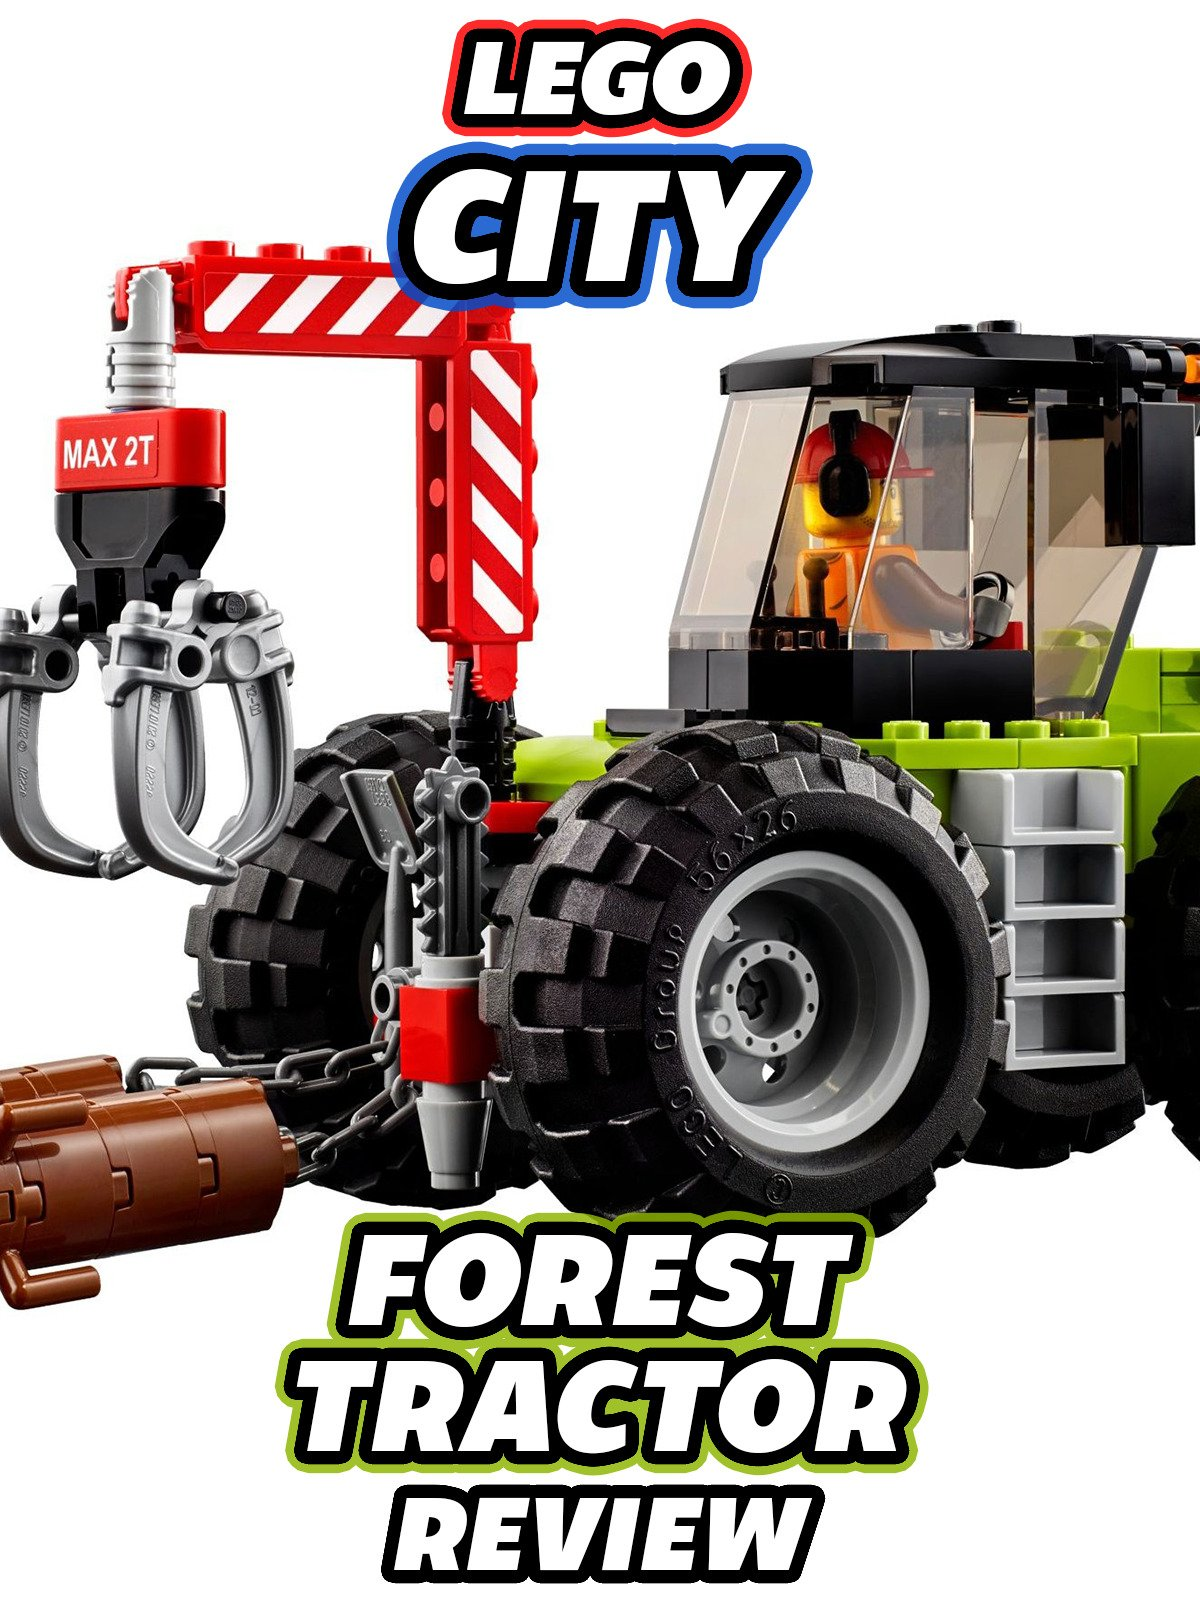 Review: Lego City Forest Tractor Review